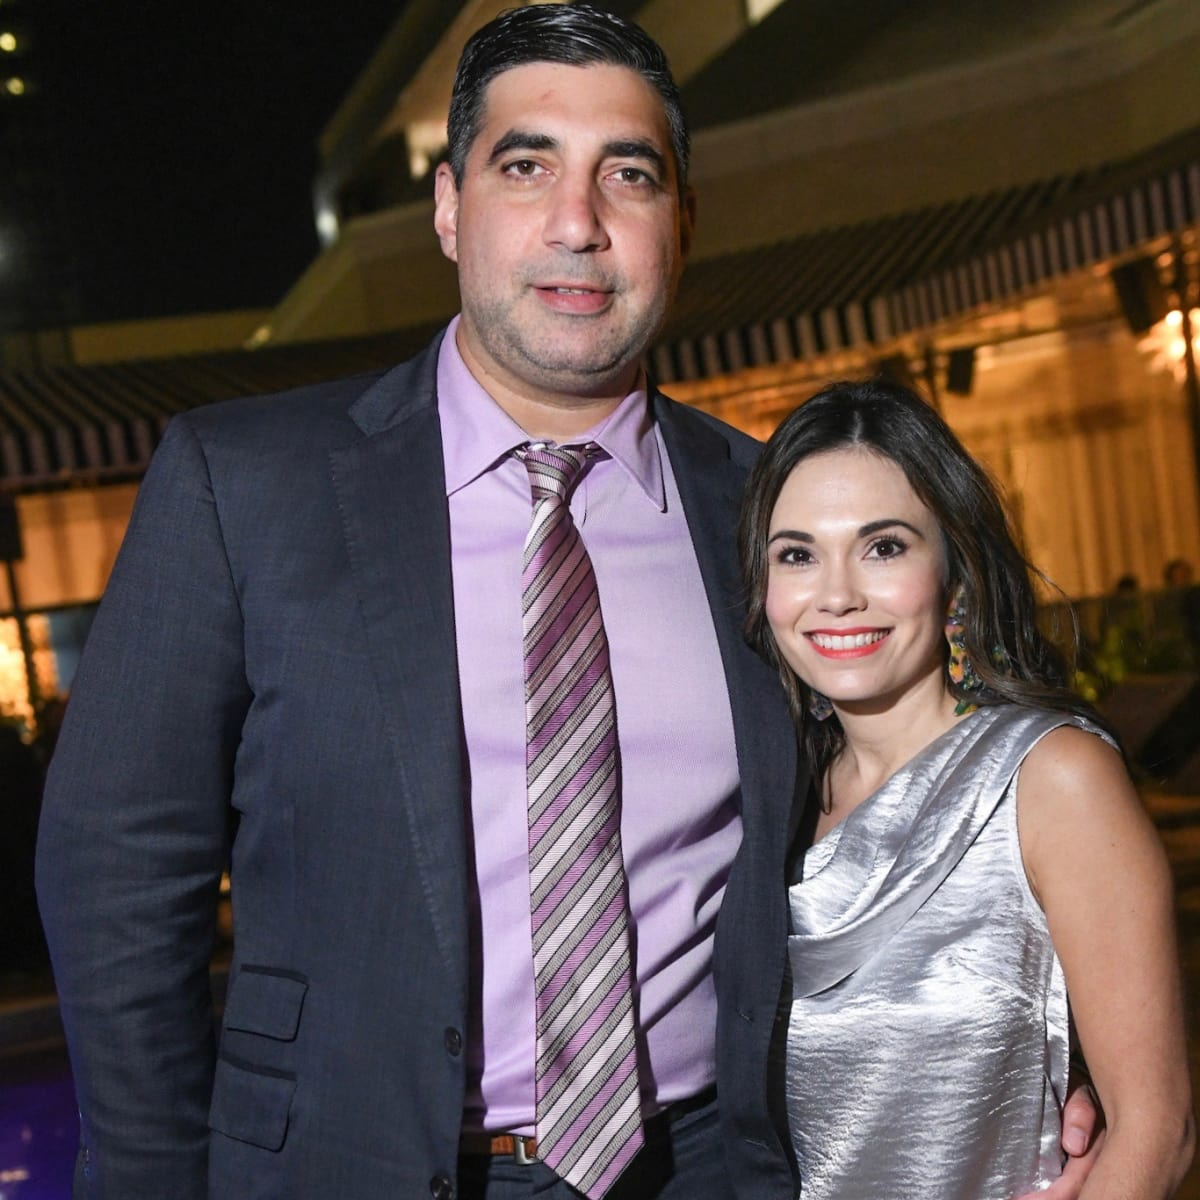 George Farah and Michele Leal Farah